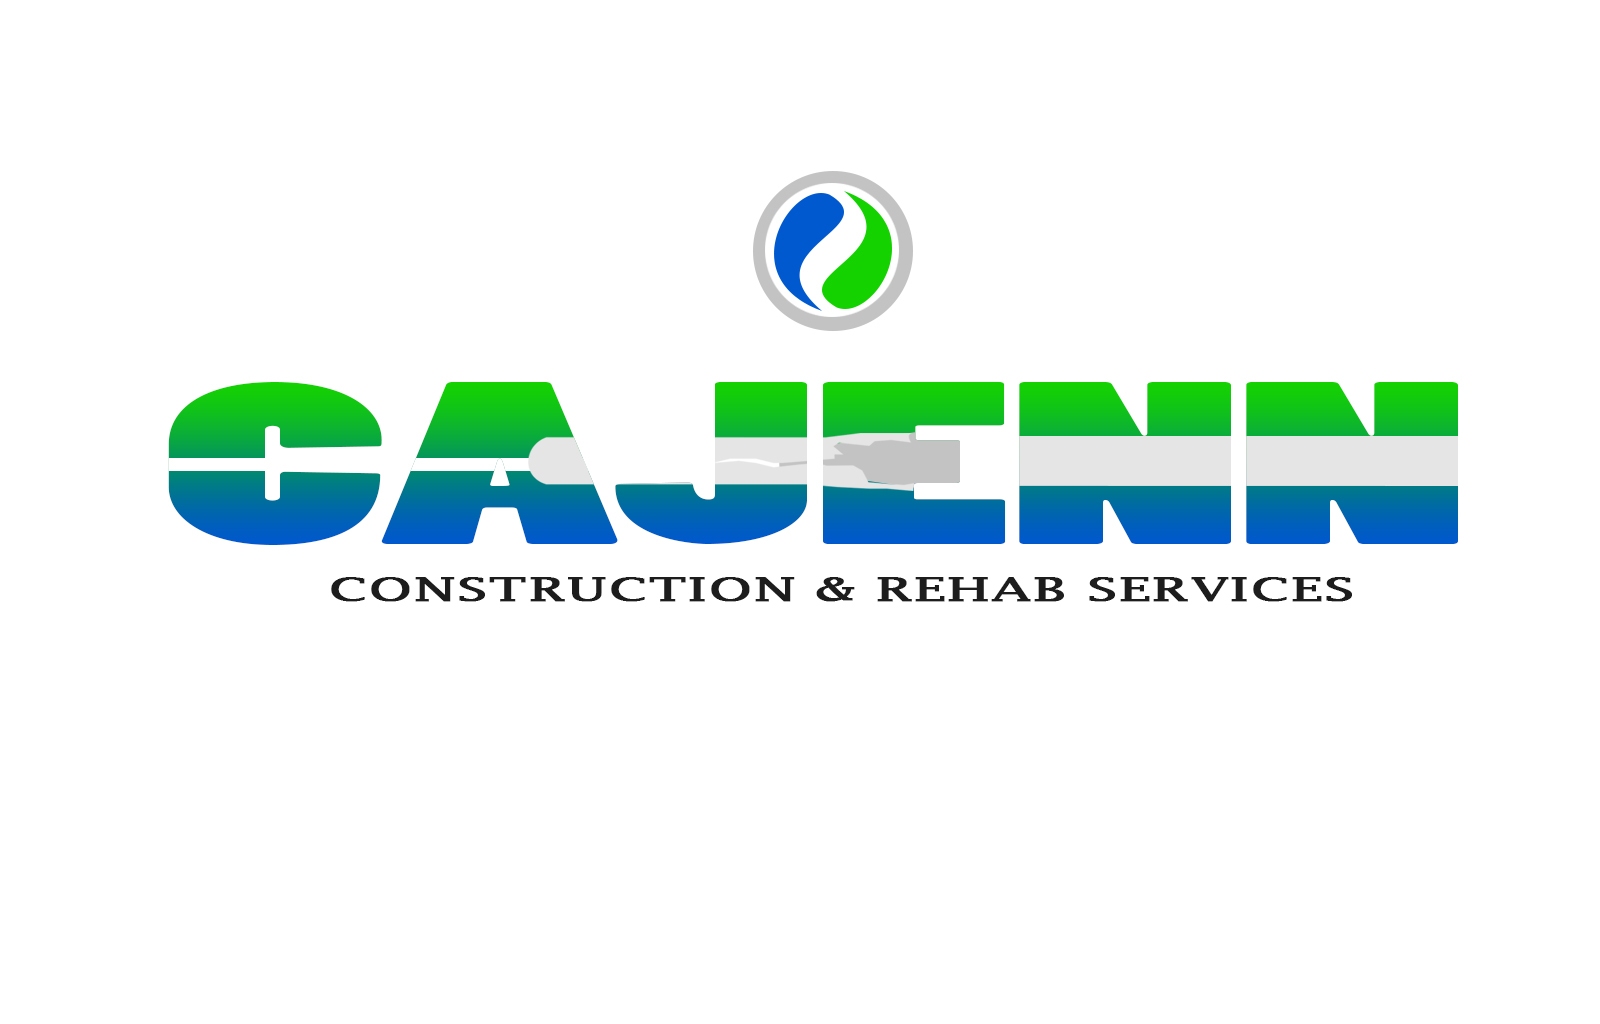 Logo Design by drunkman - Entry No. 283 in the Logo Design Contest New Logo Design for CaJenn Construction & Rehab Services.